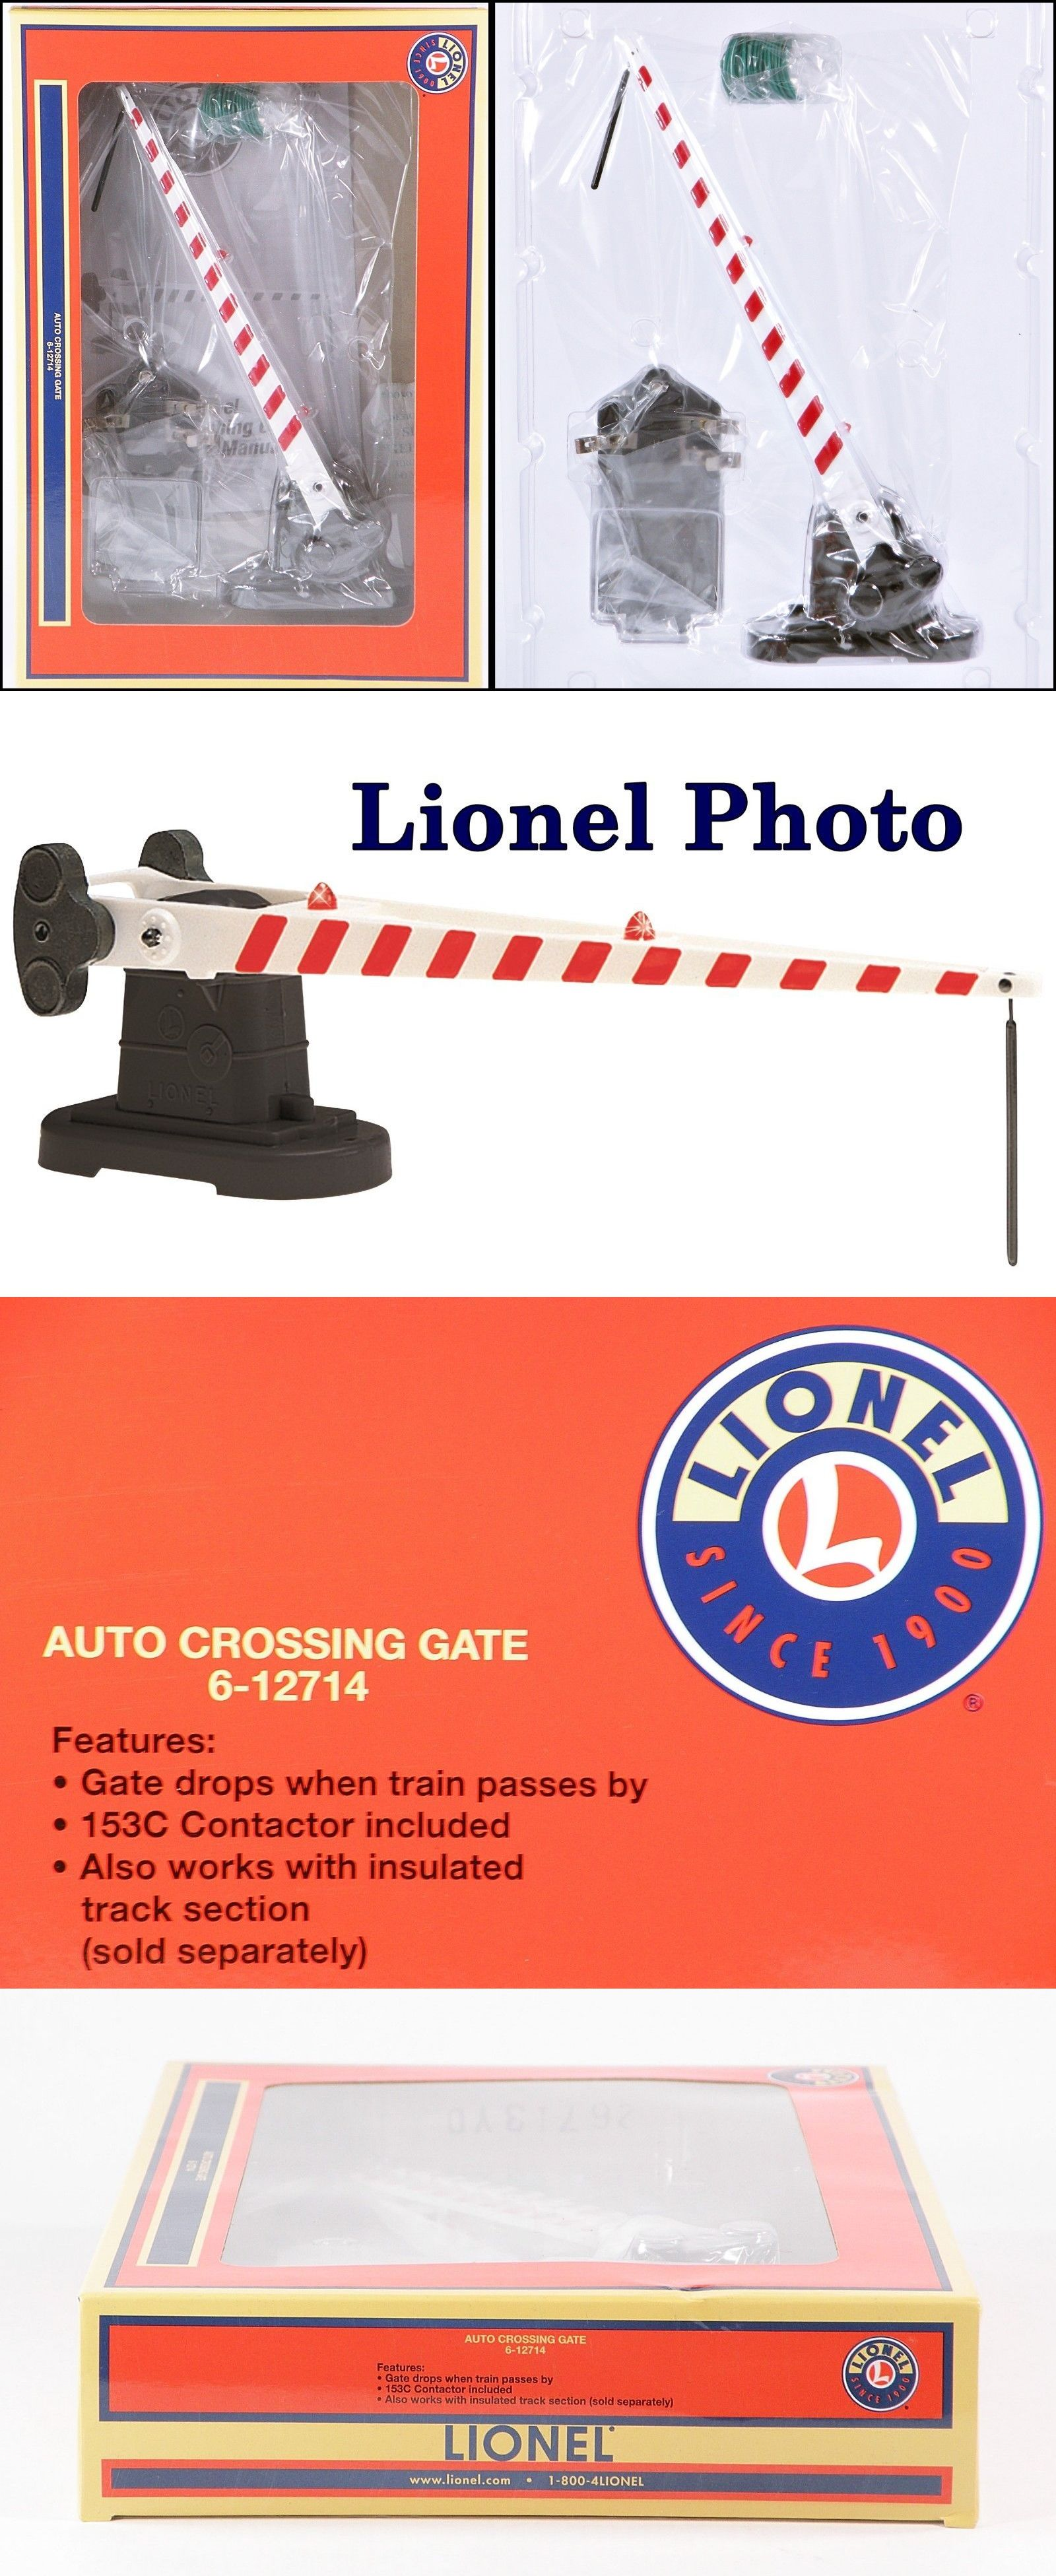 small resolution of signals 81051 lionel 6 12714 auto crossing gate w red light 1993 2017 c10 nib buy it now only 16 on ebay signals lionel crossing light